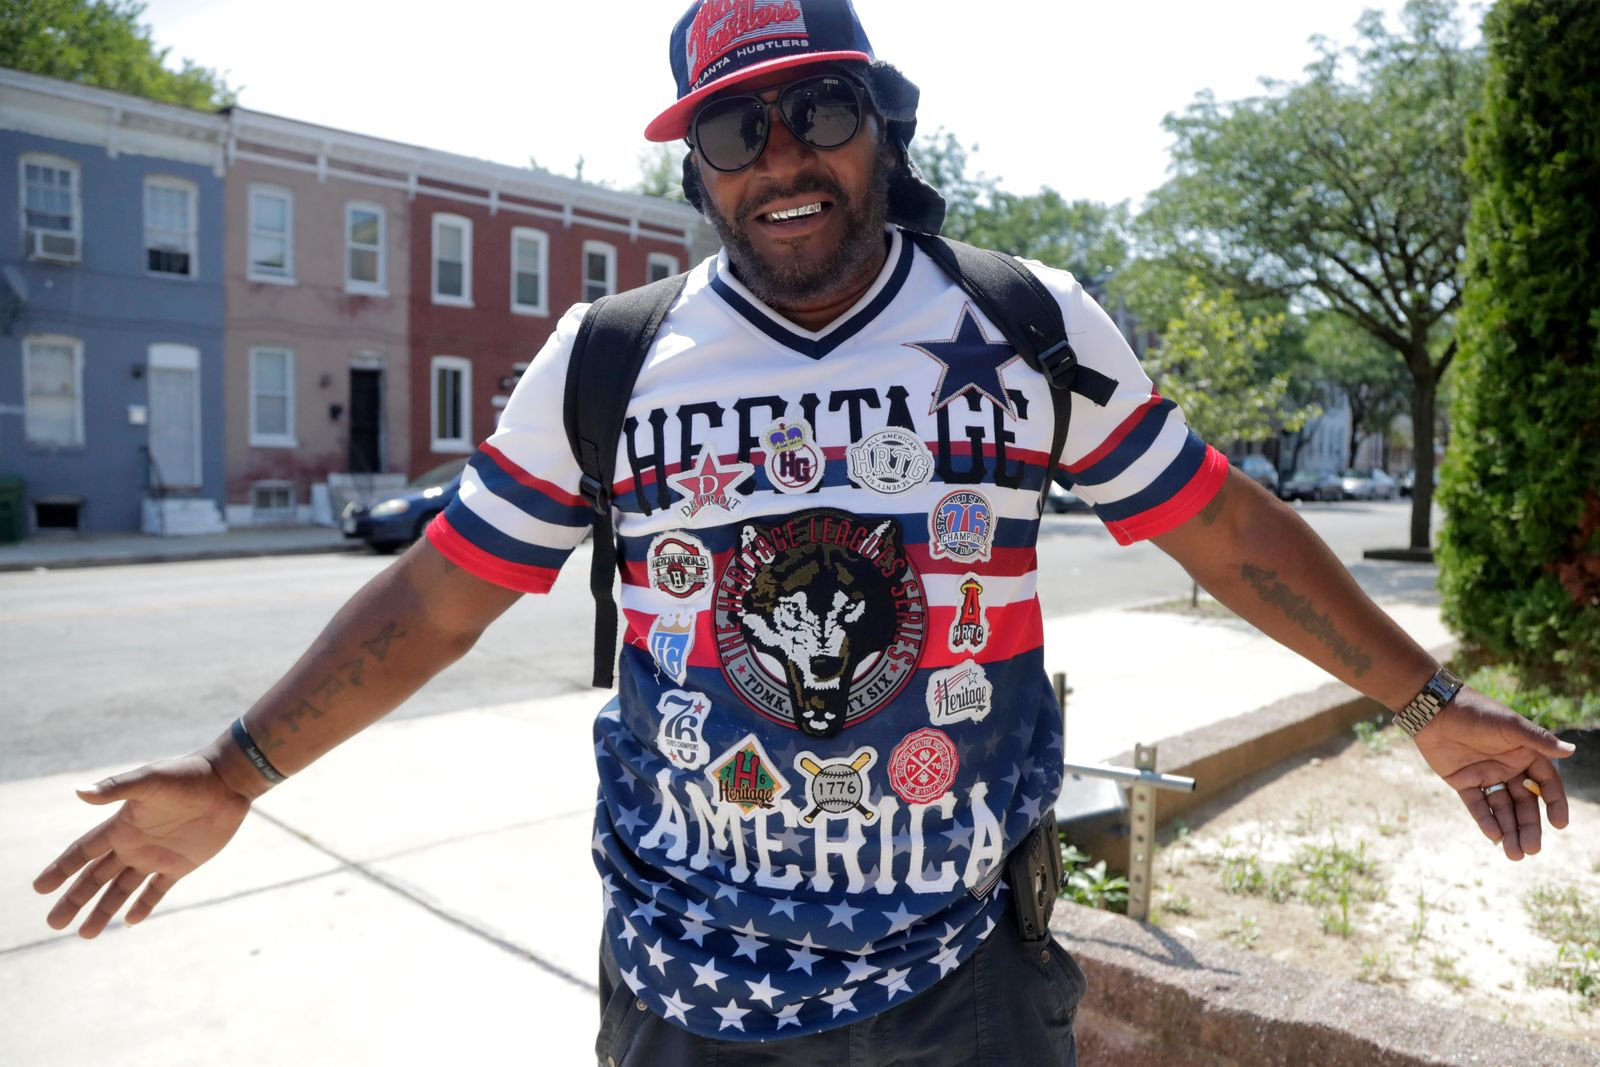 Victor Toulson, 50, displays his patriotic shirt outside of the Sandtown-Winchester Senior Center, Monday, July 29, 2019, in the Sandtown section of Baltimore. (AP Photo/Julio Cortez)